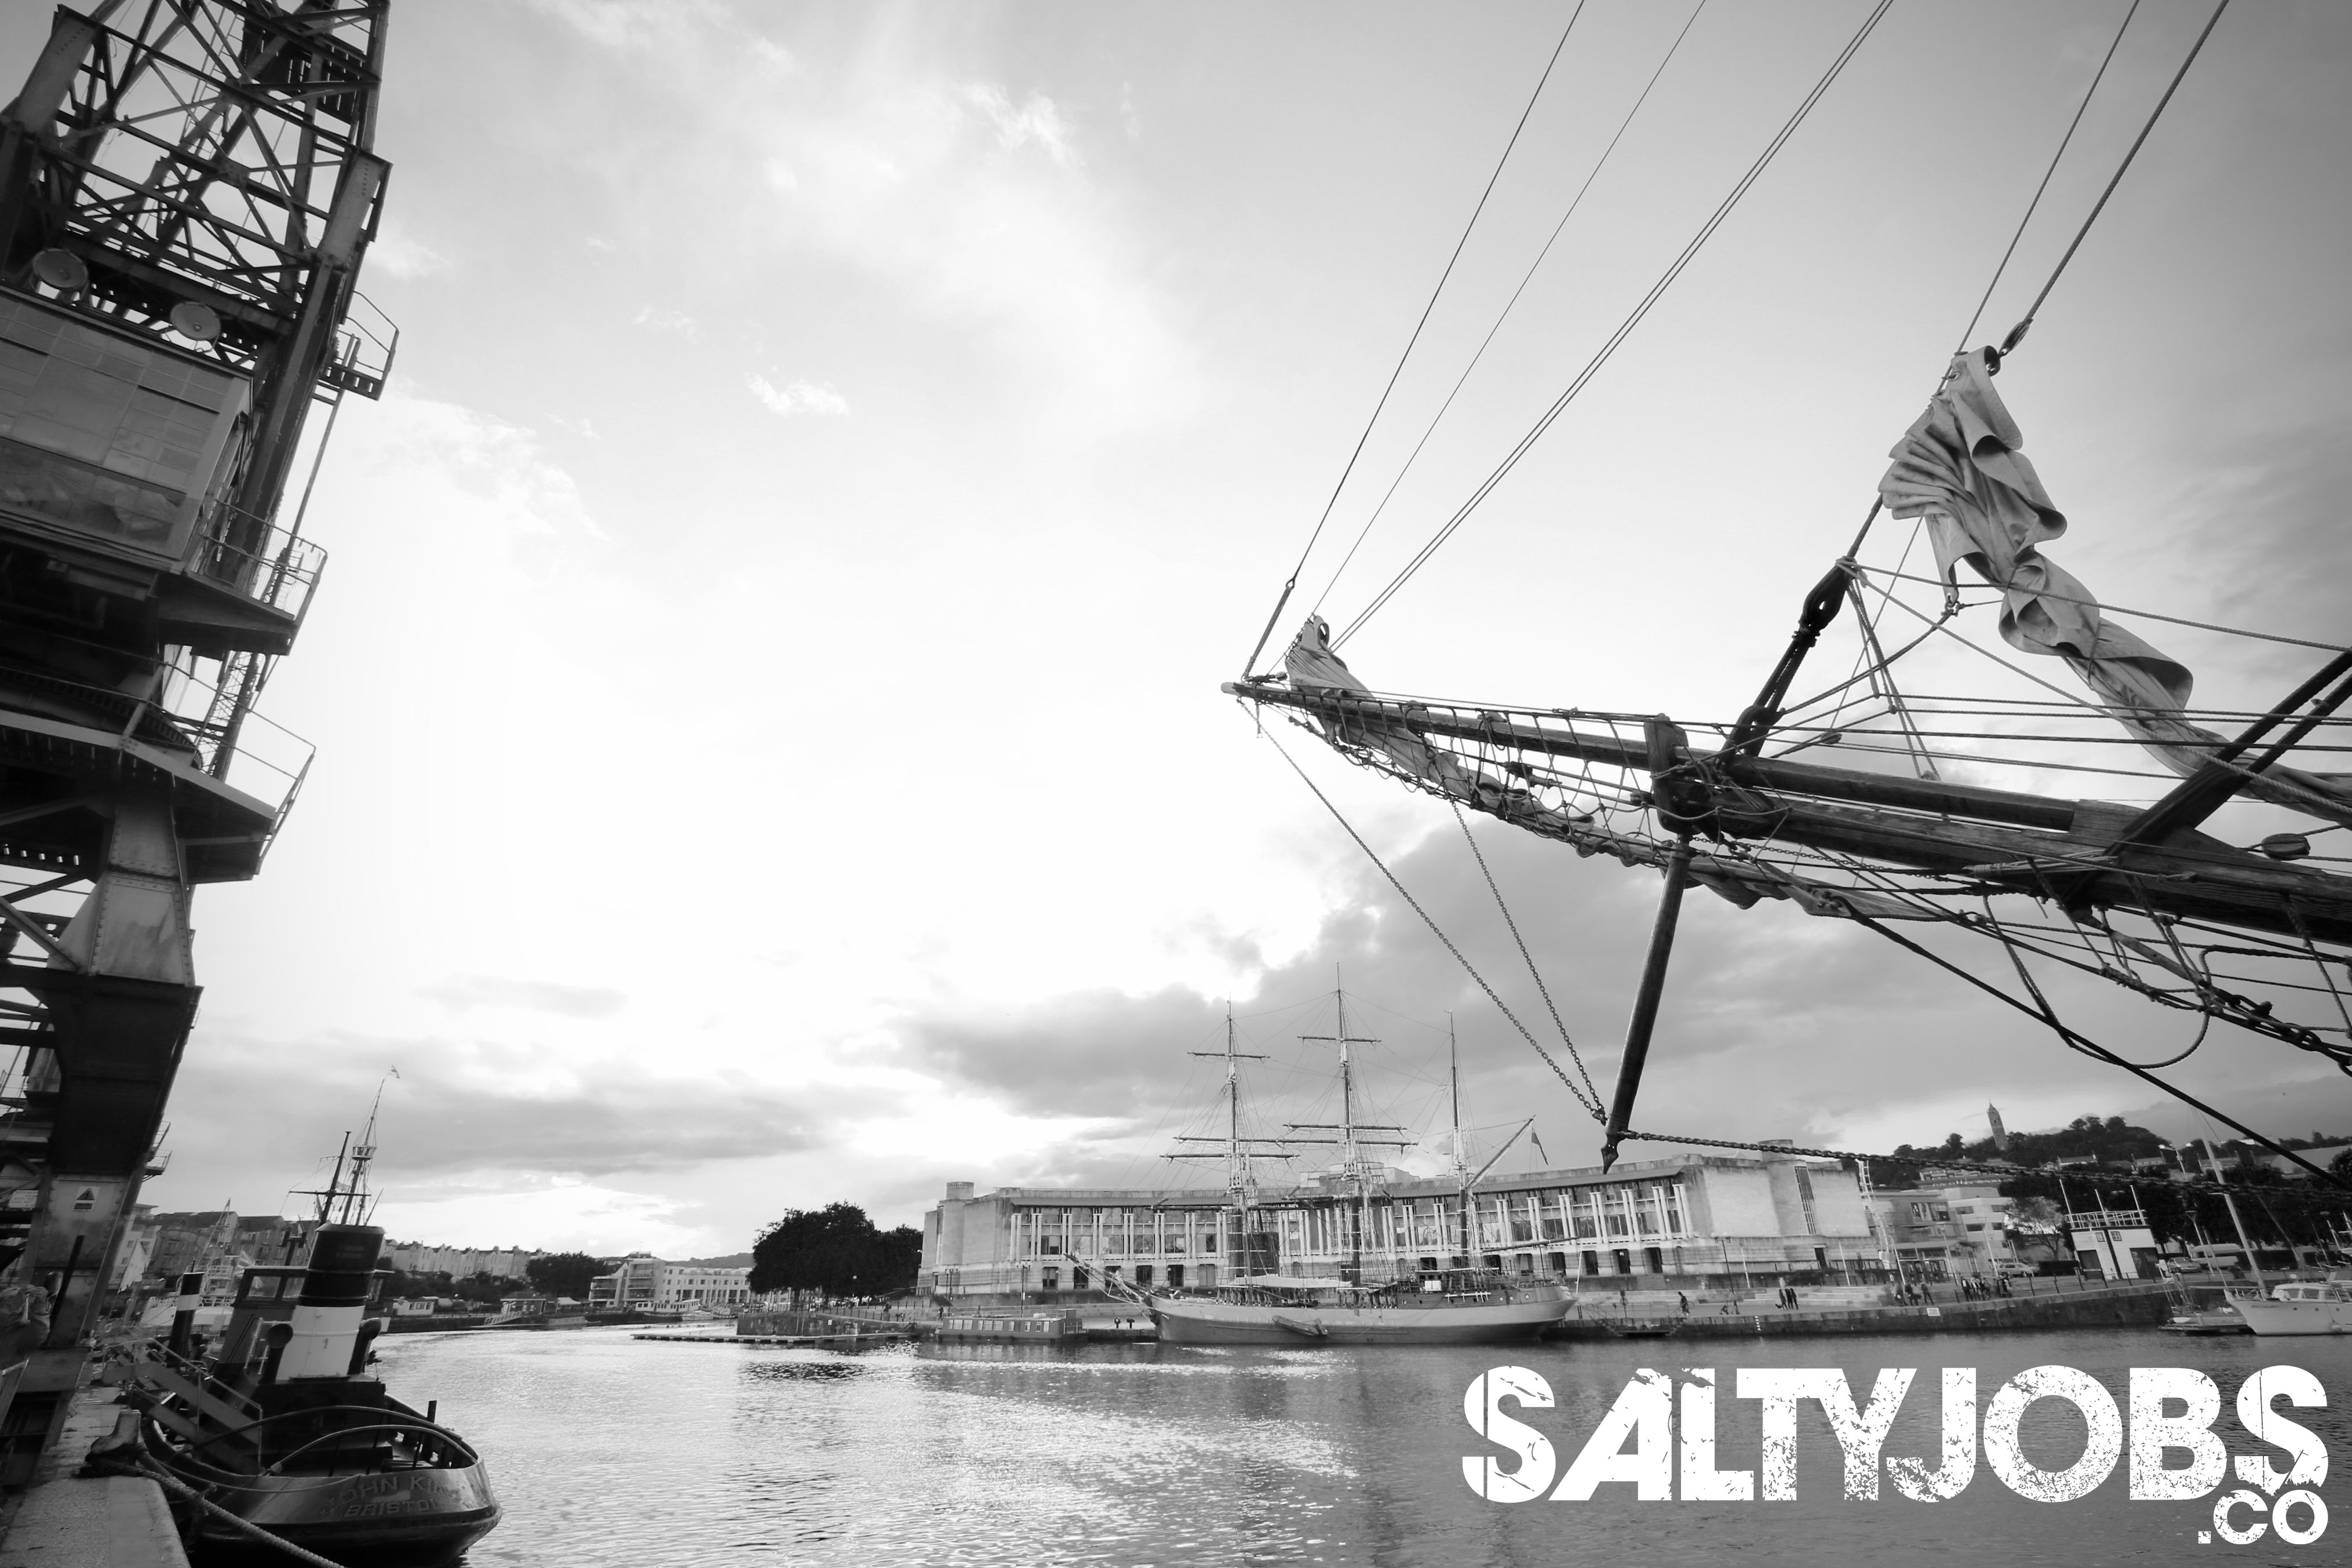 SaltyJobs - Bristol Harbour